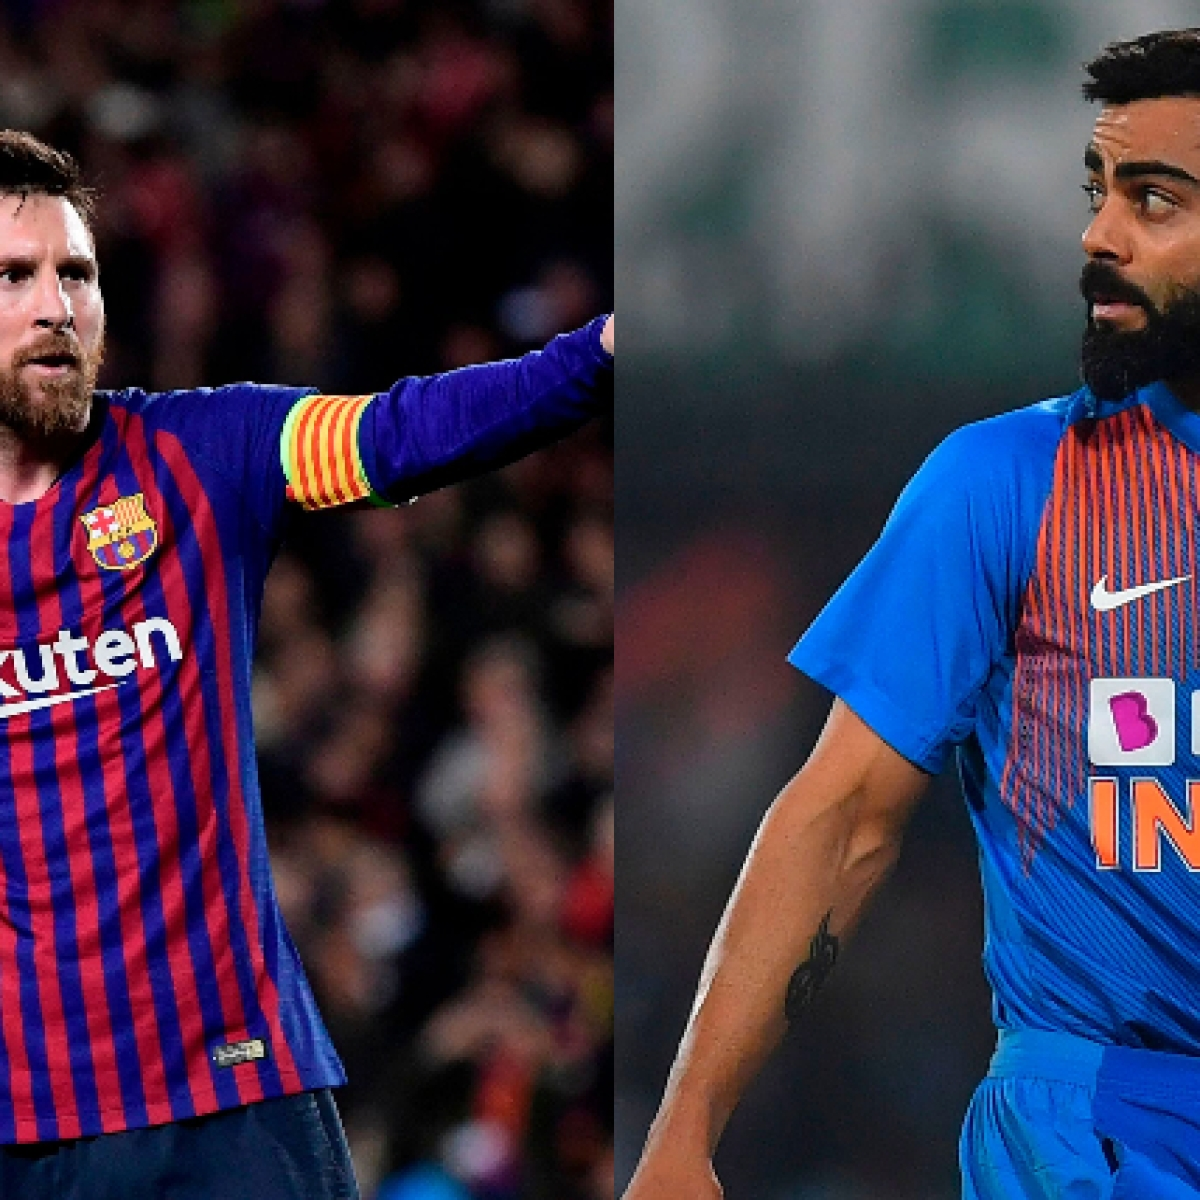 National Sports Day 2020: From Virat Kohli to Lionel Messi, sportspersons who headlined amid COVID-19